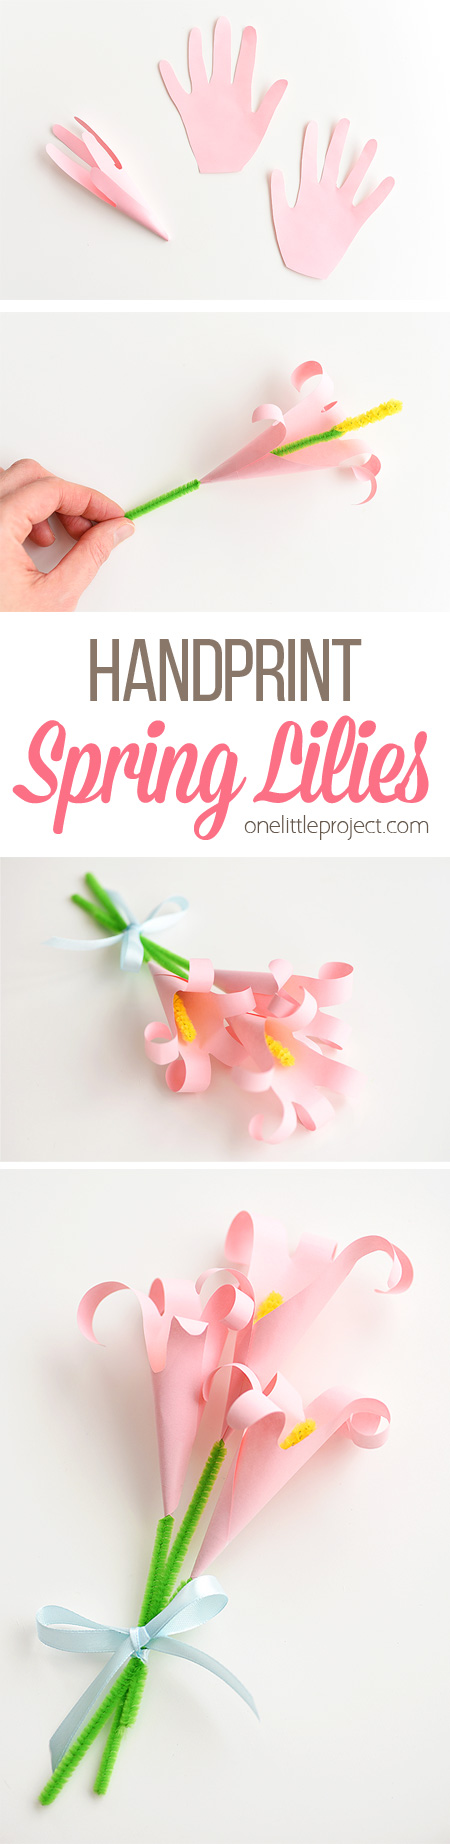 Handprint lilies how to make an easy paper lily these handprint lilies are so easy to make and they look so beautiful you can izmirmasajfo